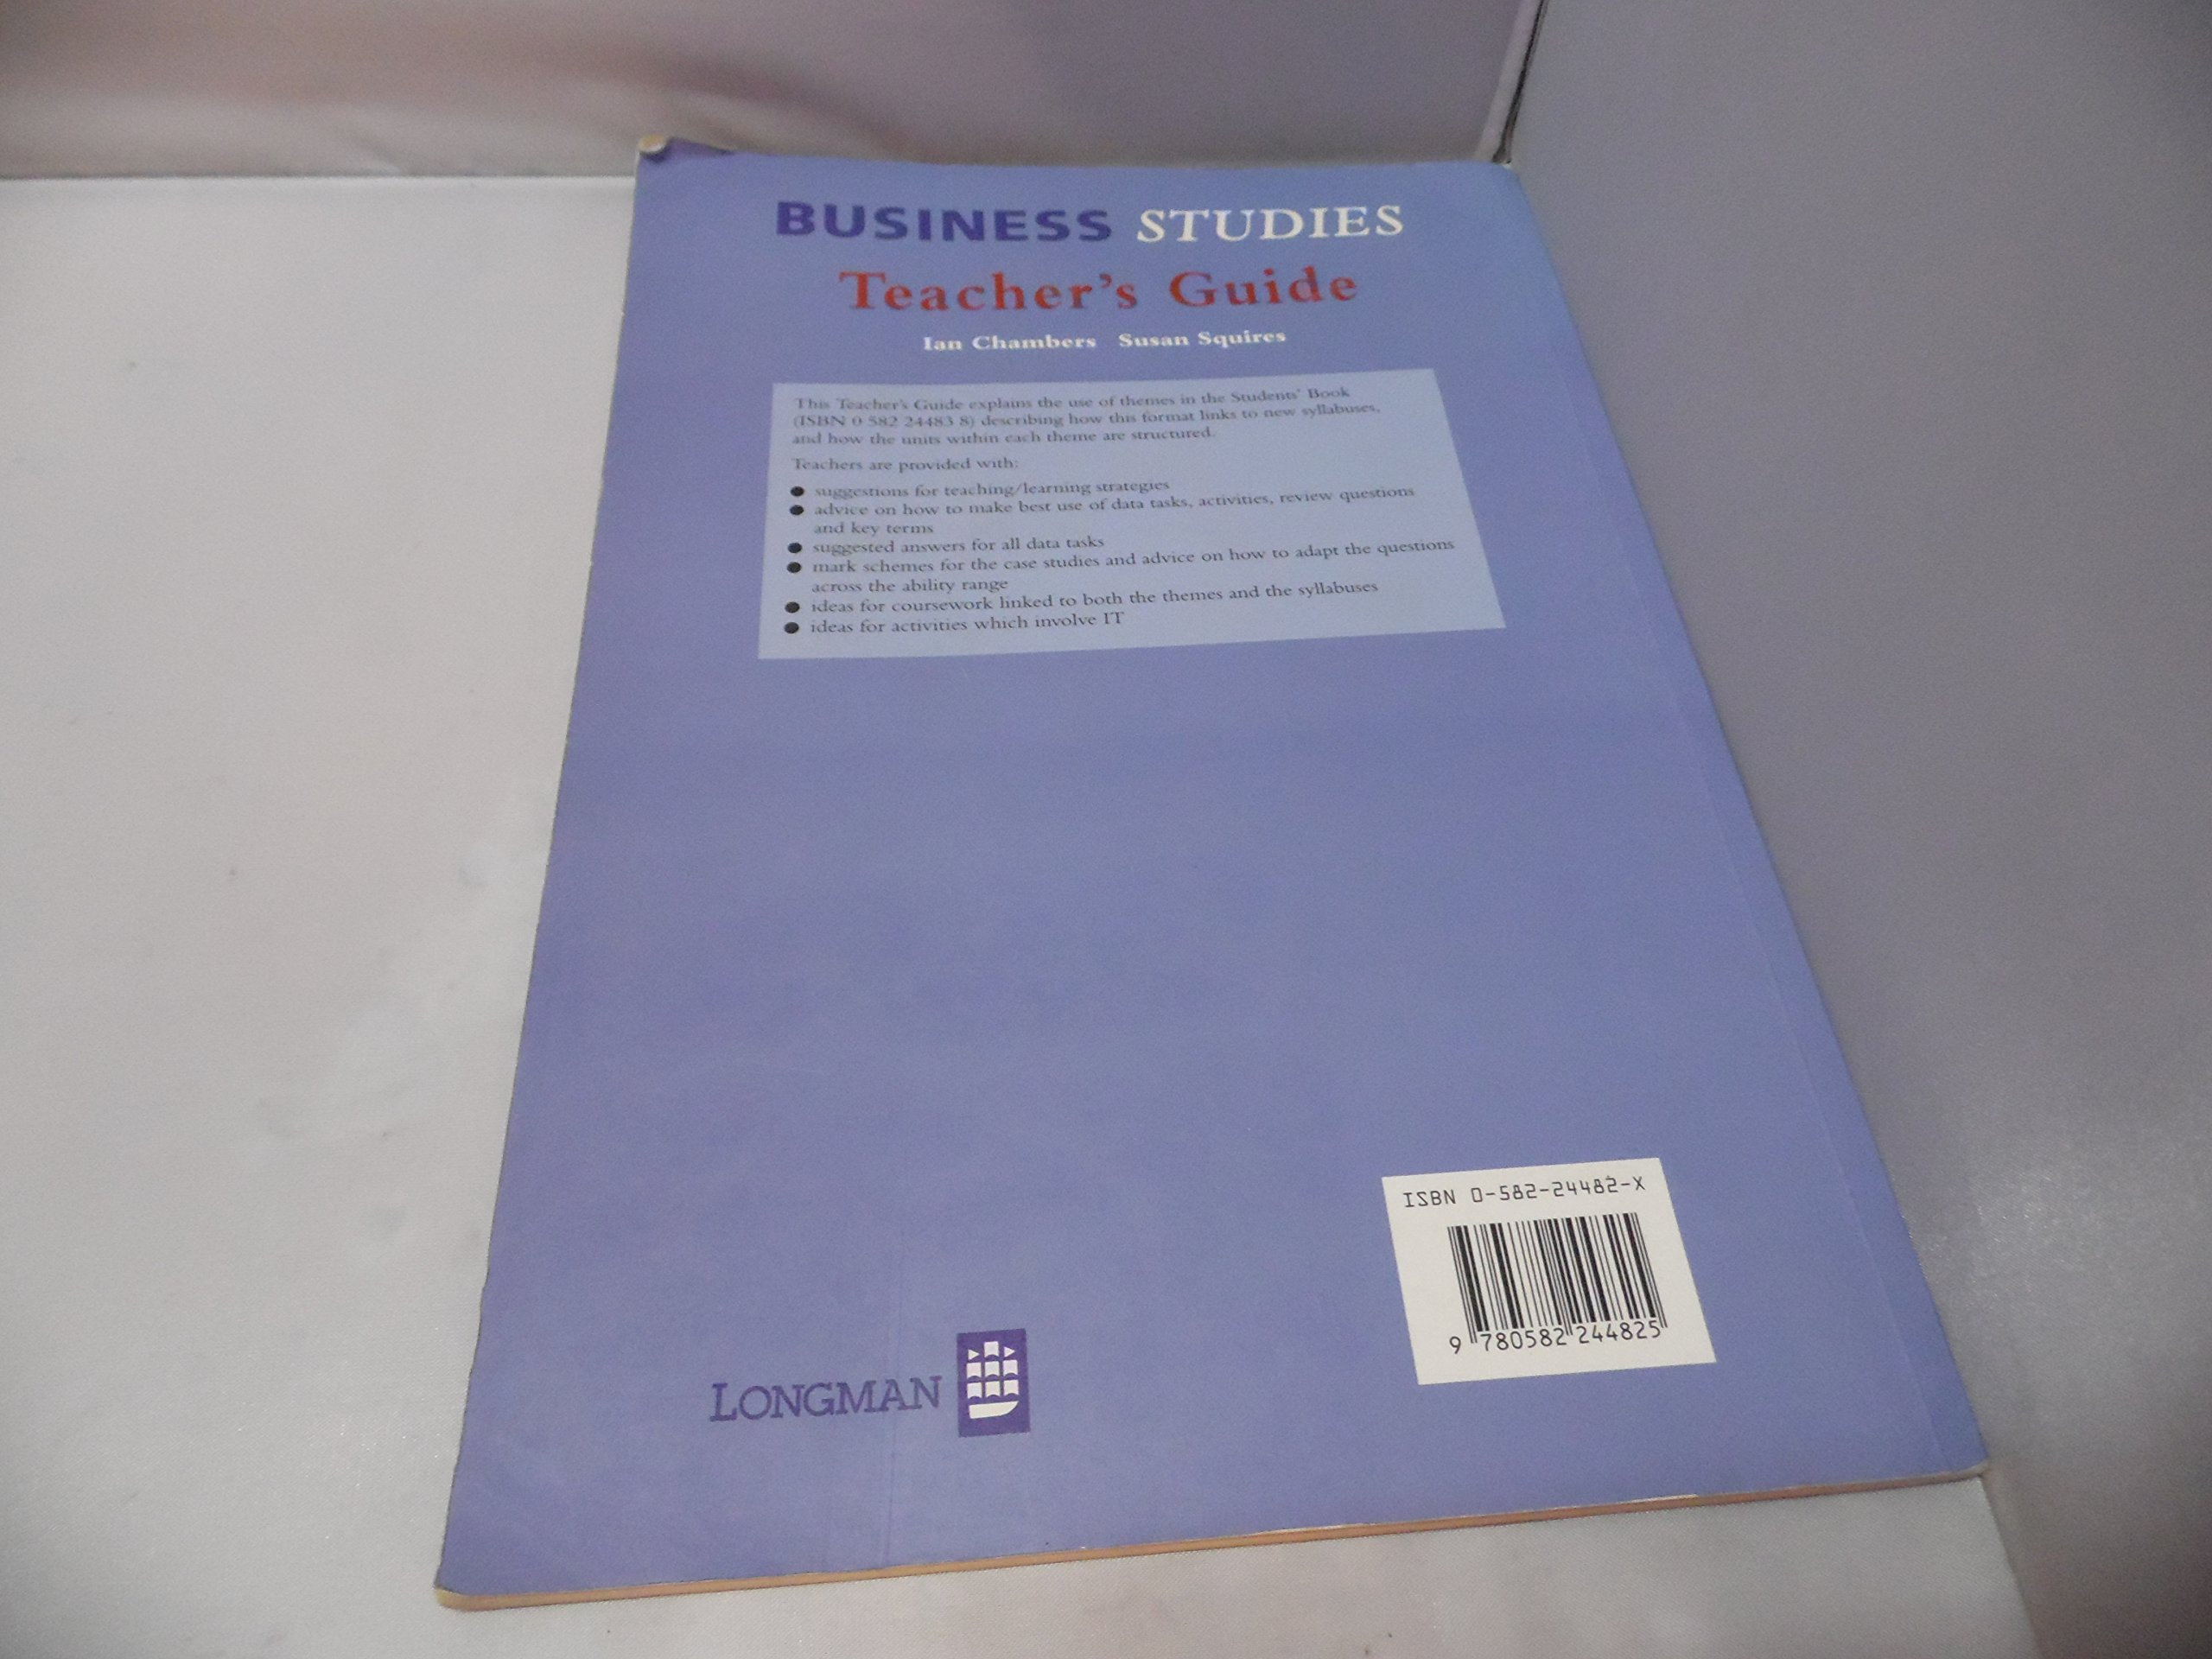 Business study guide teacher edition take a look inside array business studies teacher u0027s guide susan squires ian chambers etc rh amazon com fandeluxe Image collections